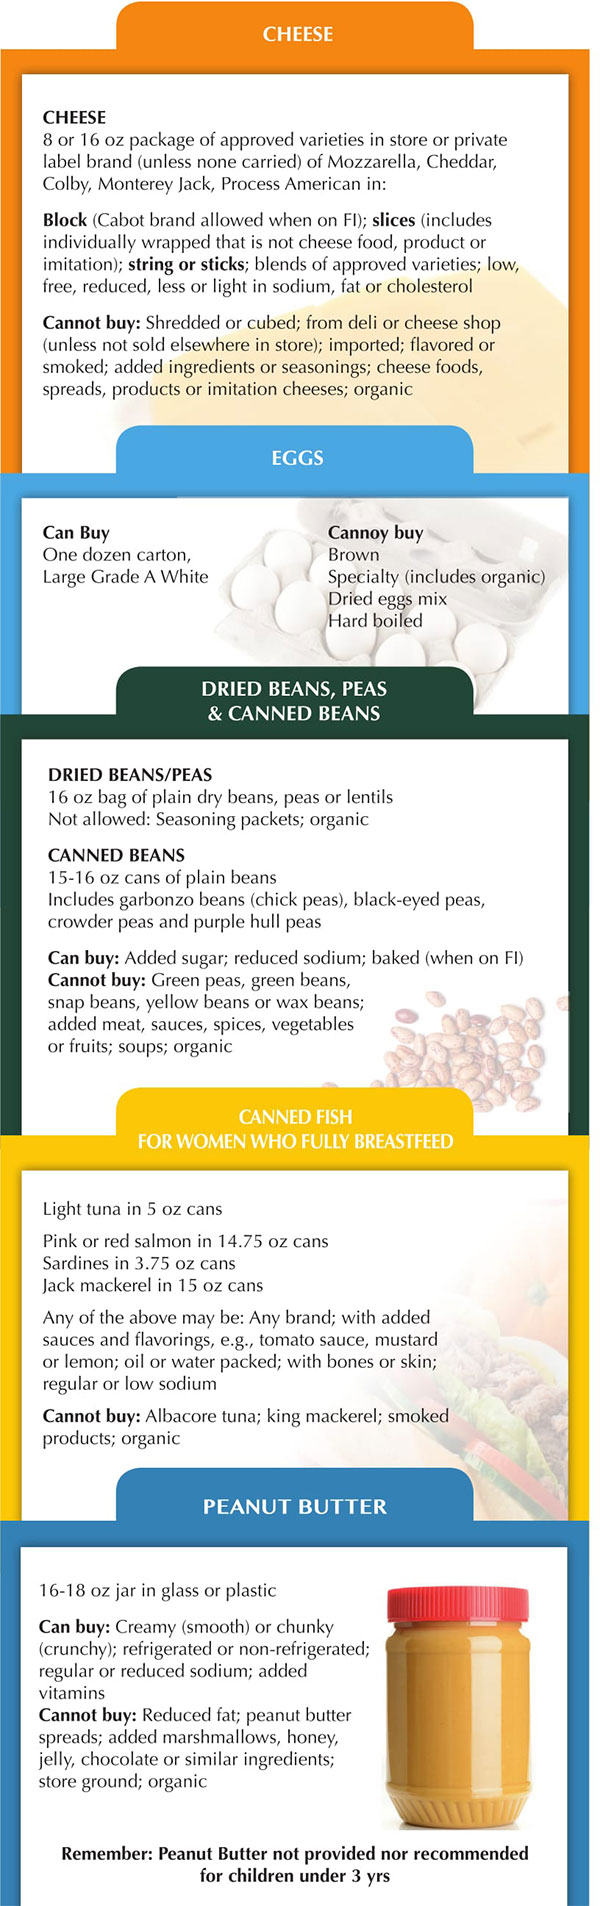 Tennessee Wic Food List Cheese, Eggs, Dried Beans, Peas, Canned Beans,